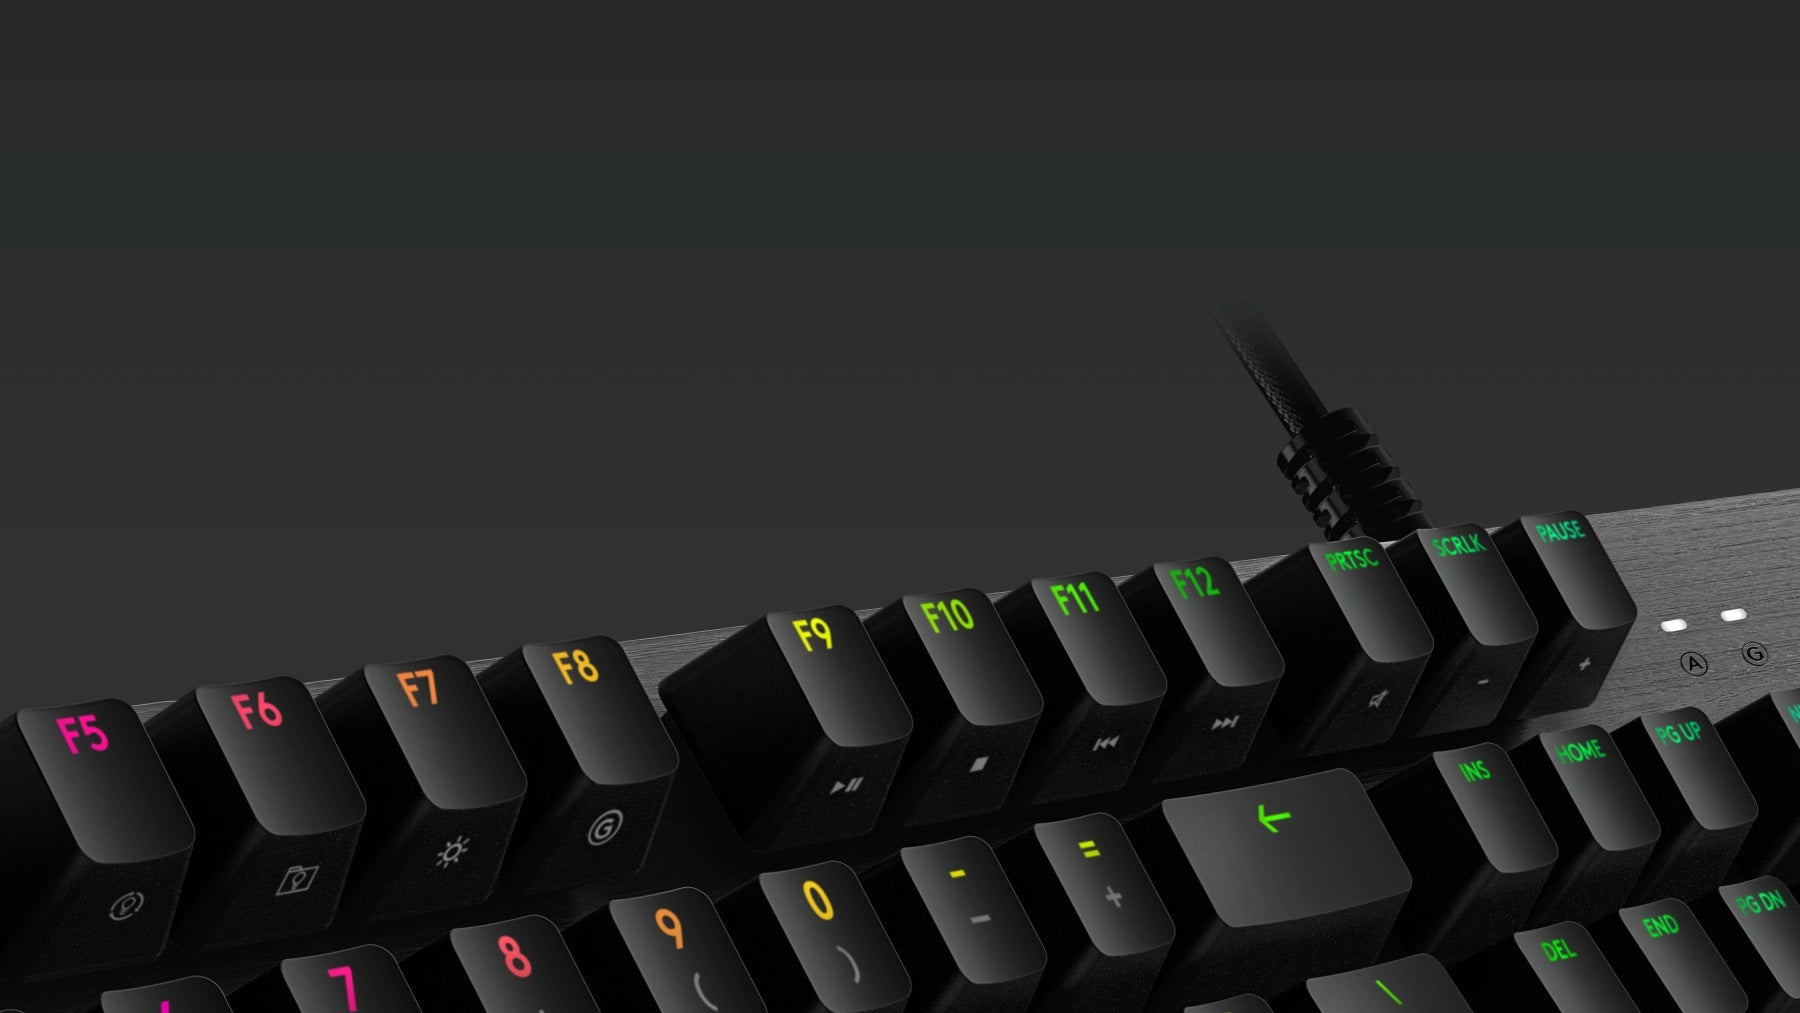 FULL FUNCTION KEYS - Media and lighting controls are right at your fingertips. Use the FN key to control volume, play and pause, mute, toggle game mode, change lighting effects, etc. Use the FN toggle feature in Logitech G HUB and configure your function keys to perform these alt commands by default.